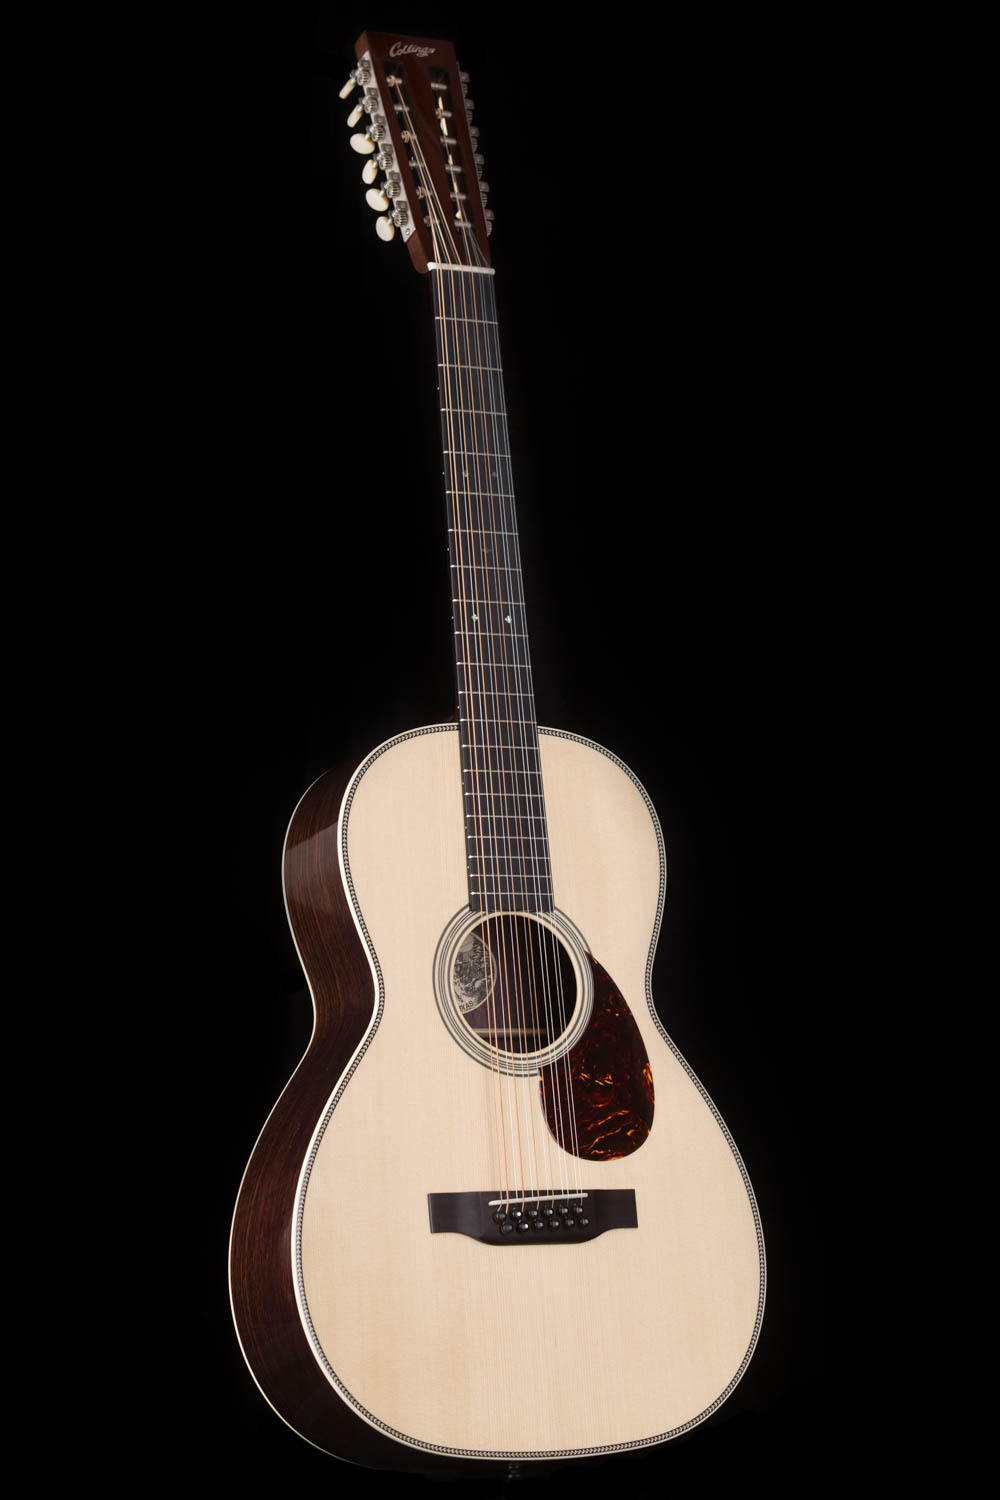 collings 02h 12 string small body 12 string acoustic guitar. Black Bedroom Furniture Sets. Home Design Ideas